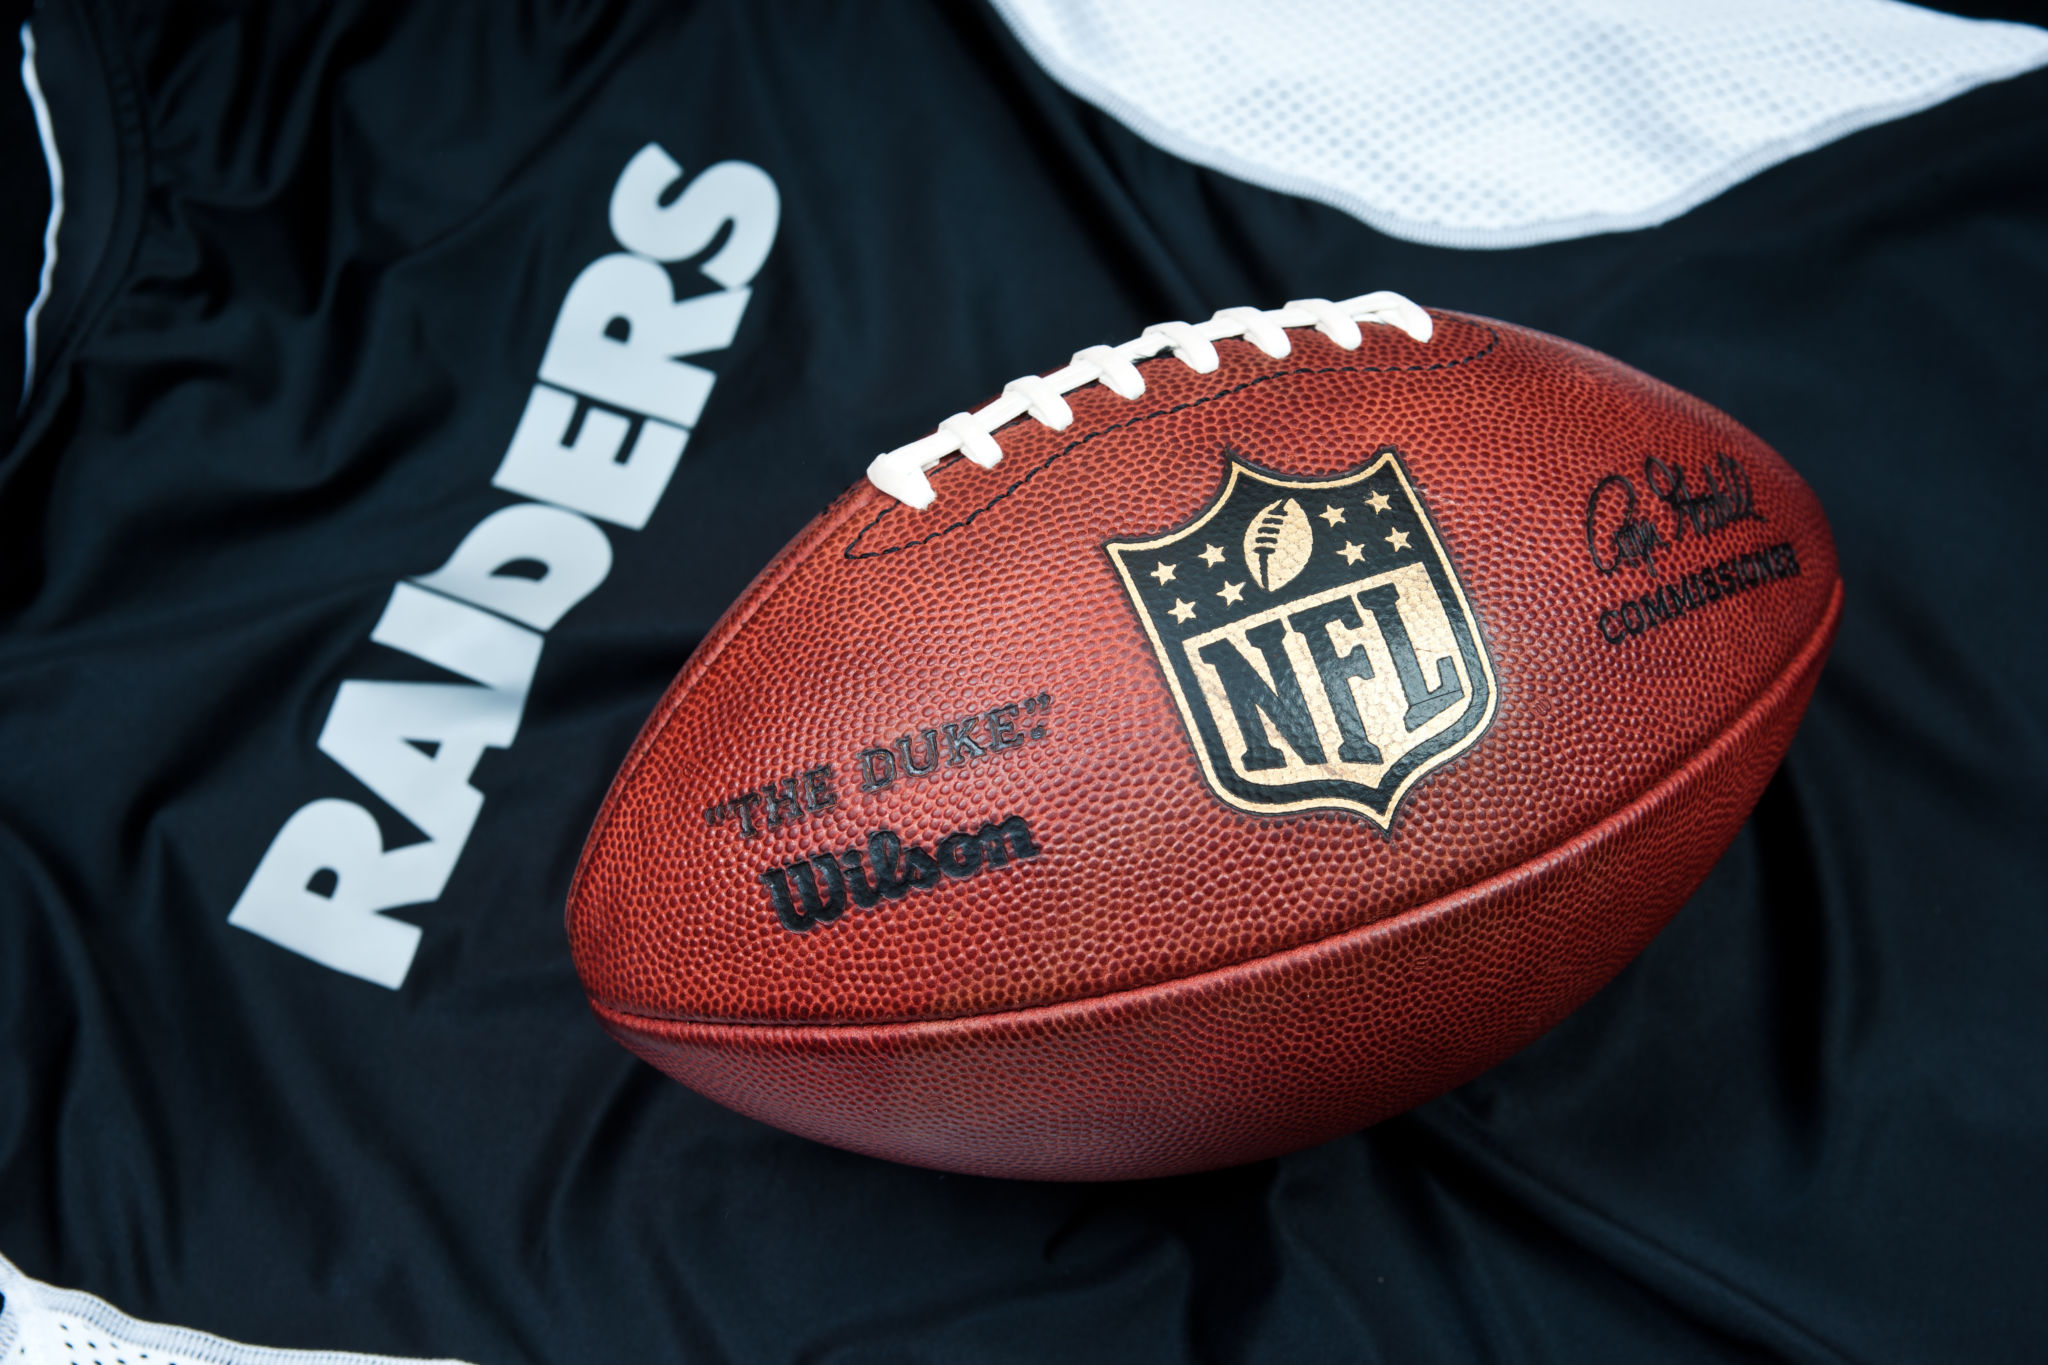 Oakland Raiders jersey and NFL branded football